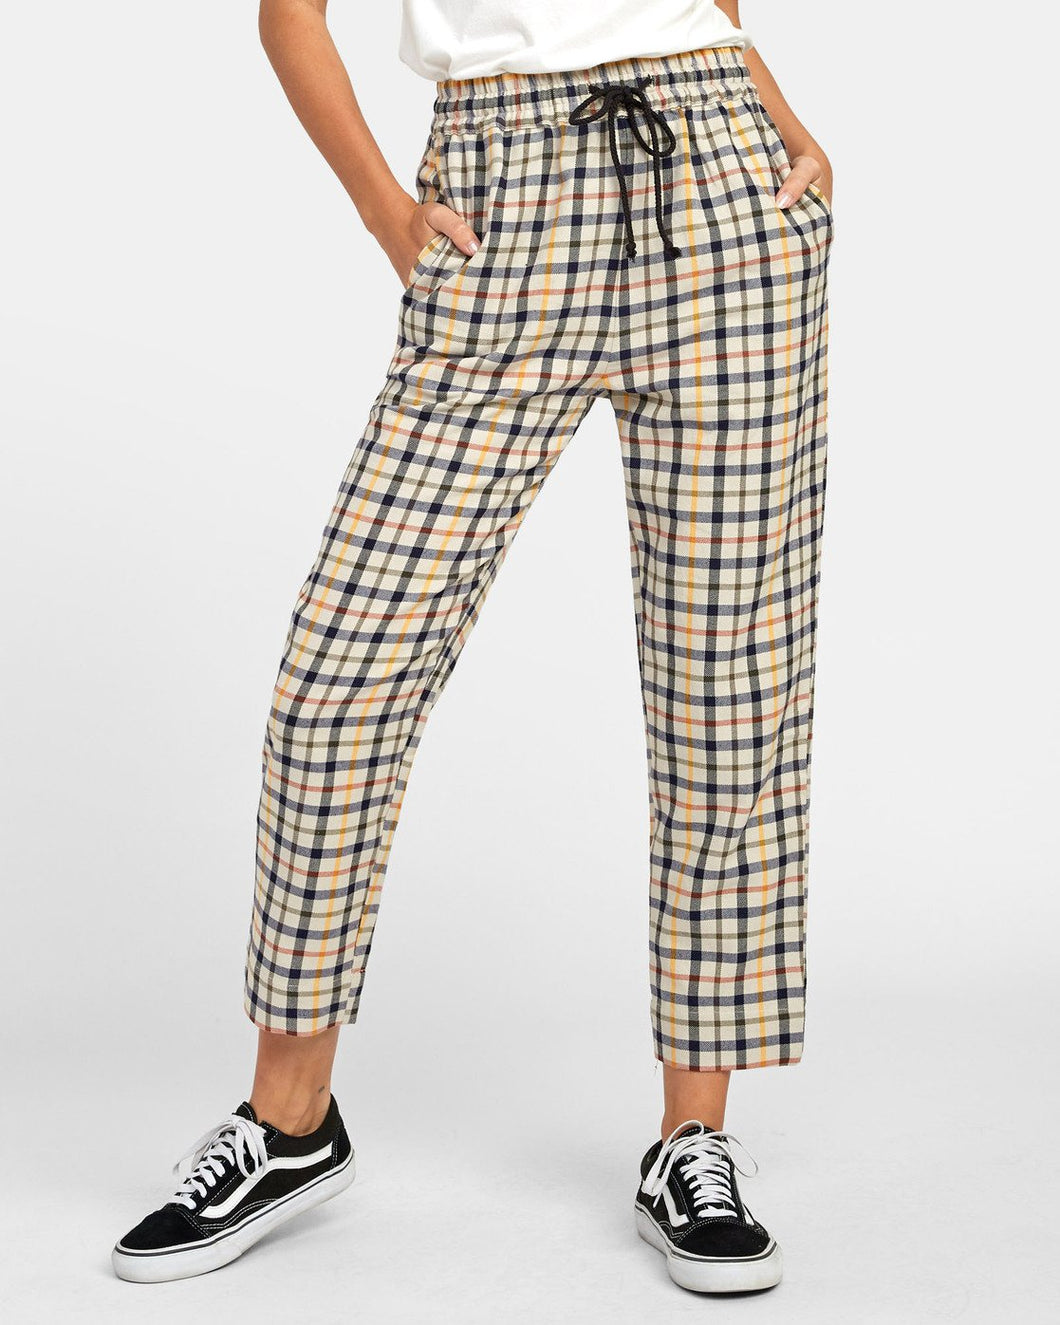 RVCA High Waisted Tapered Pants - Tetras